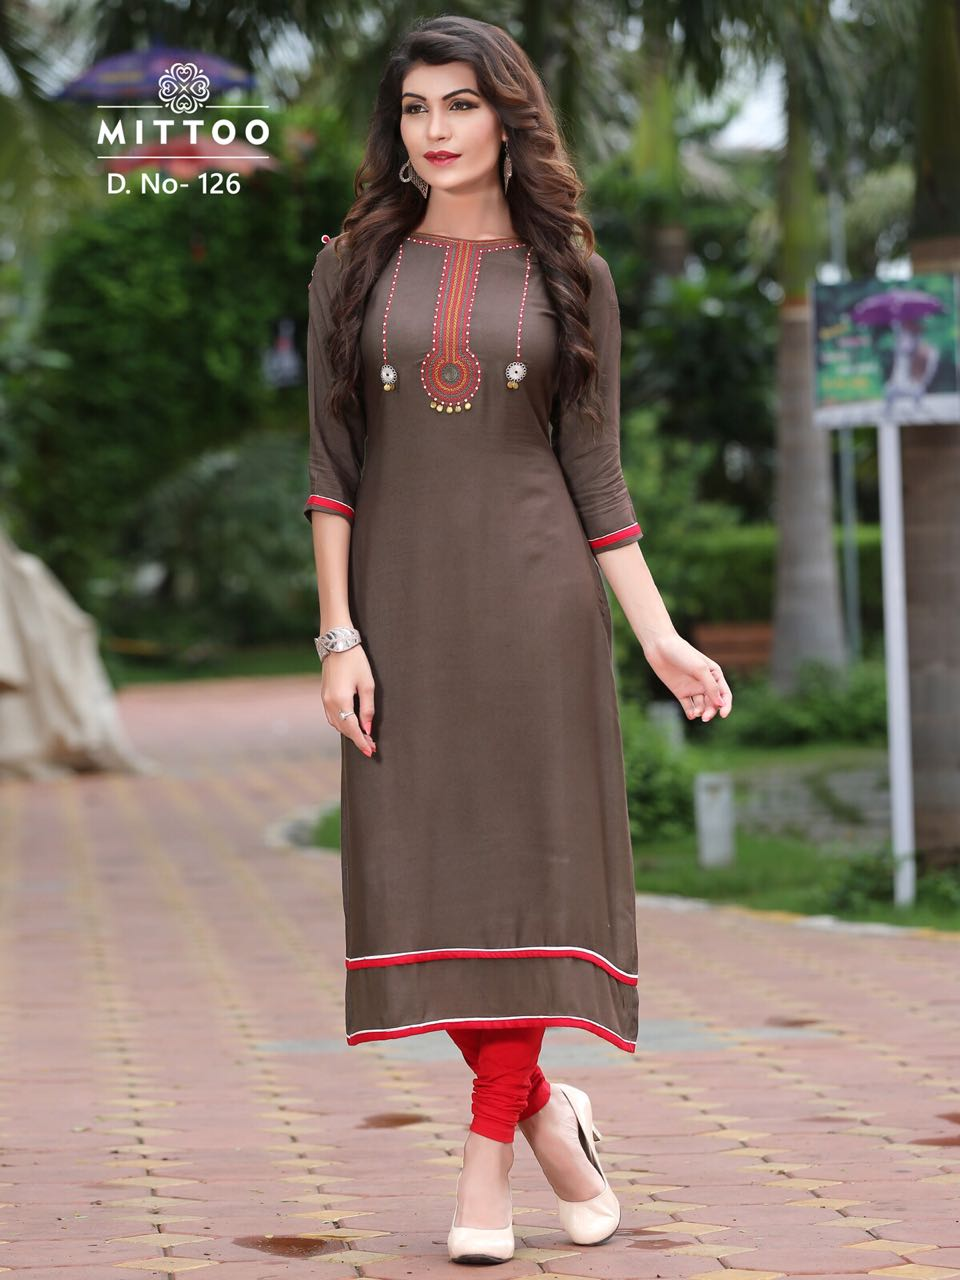 02618e156e PAYAL BY MITTOO 125 TO 132 SERIES BEAUTIFUL COLORFUL FANCY STYLISH ...